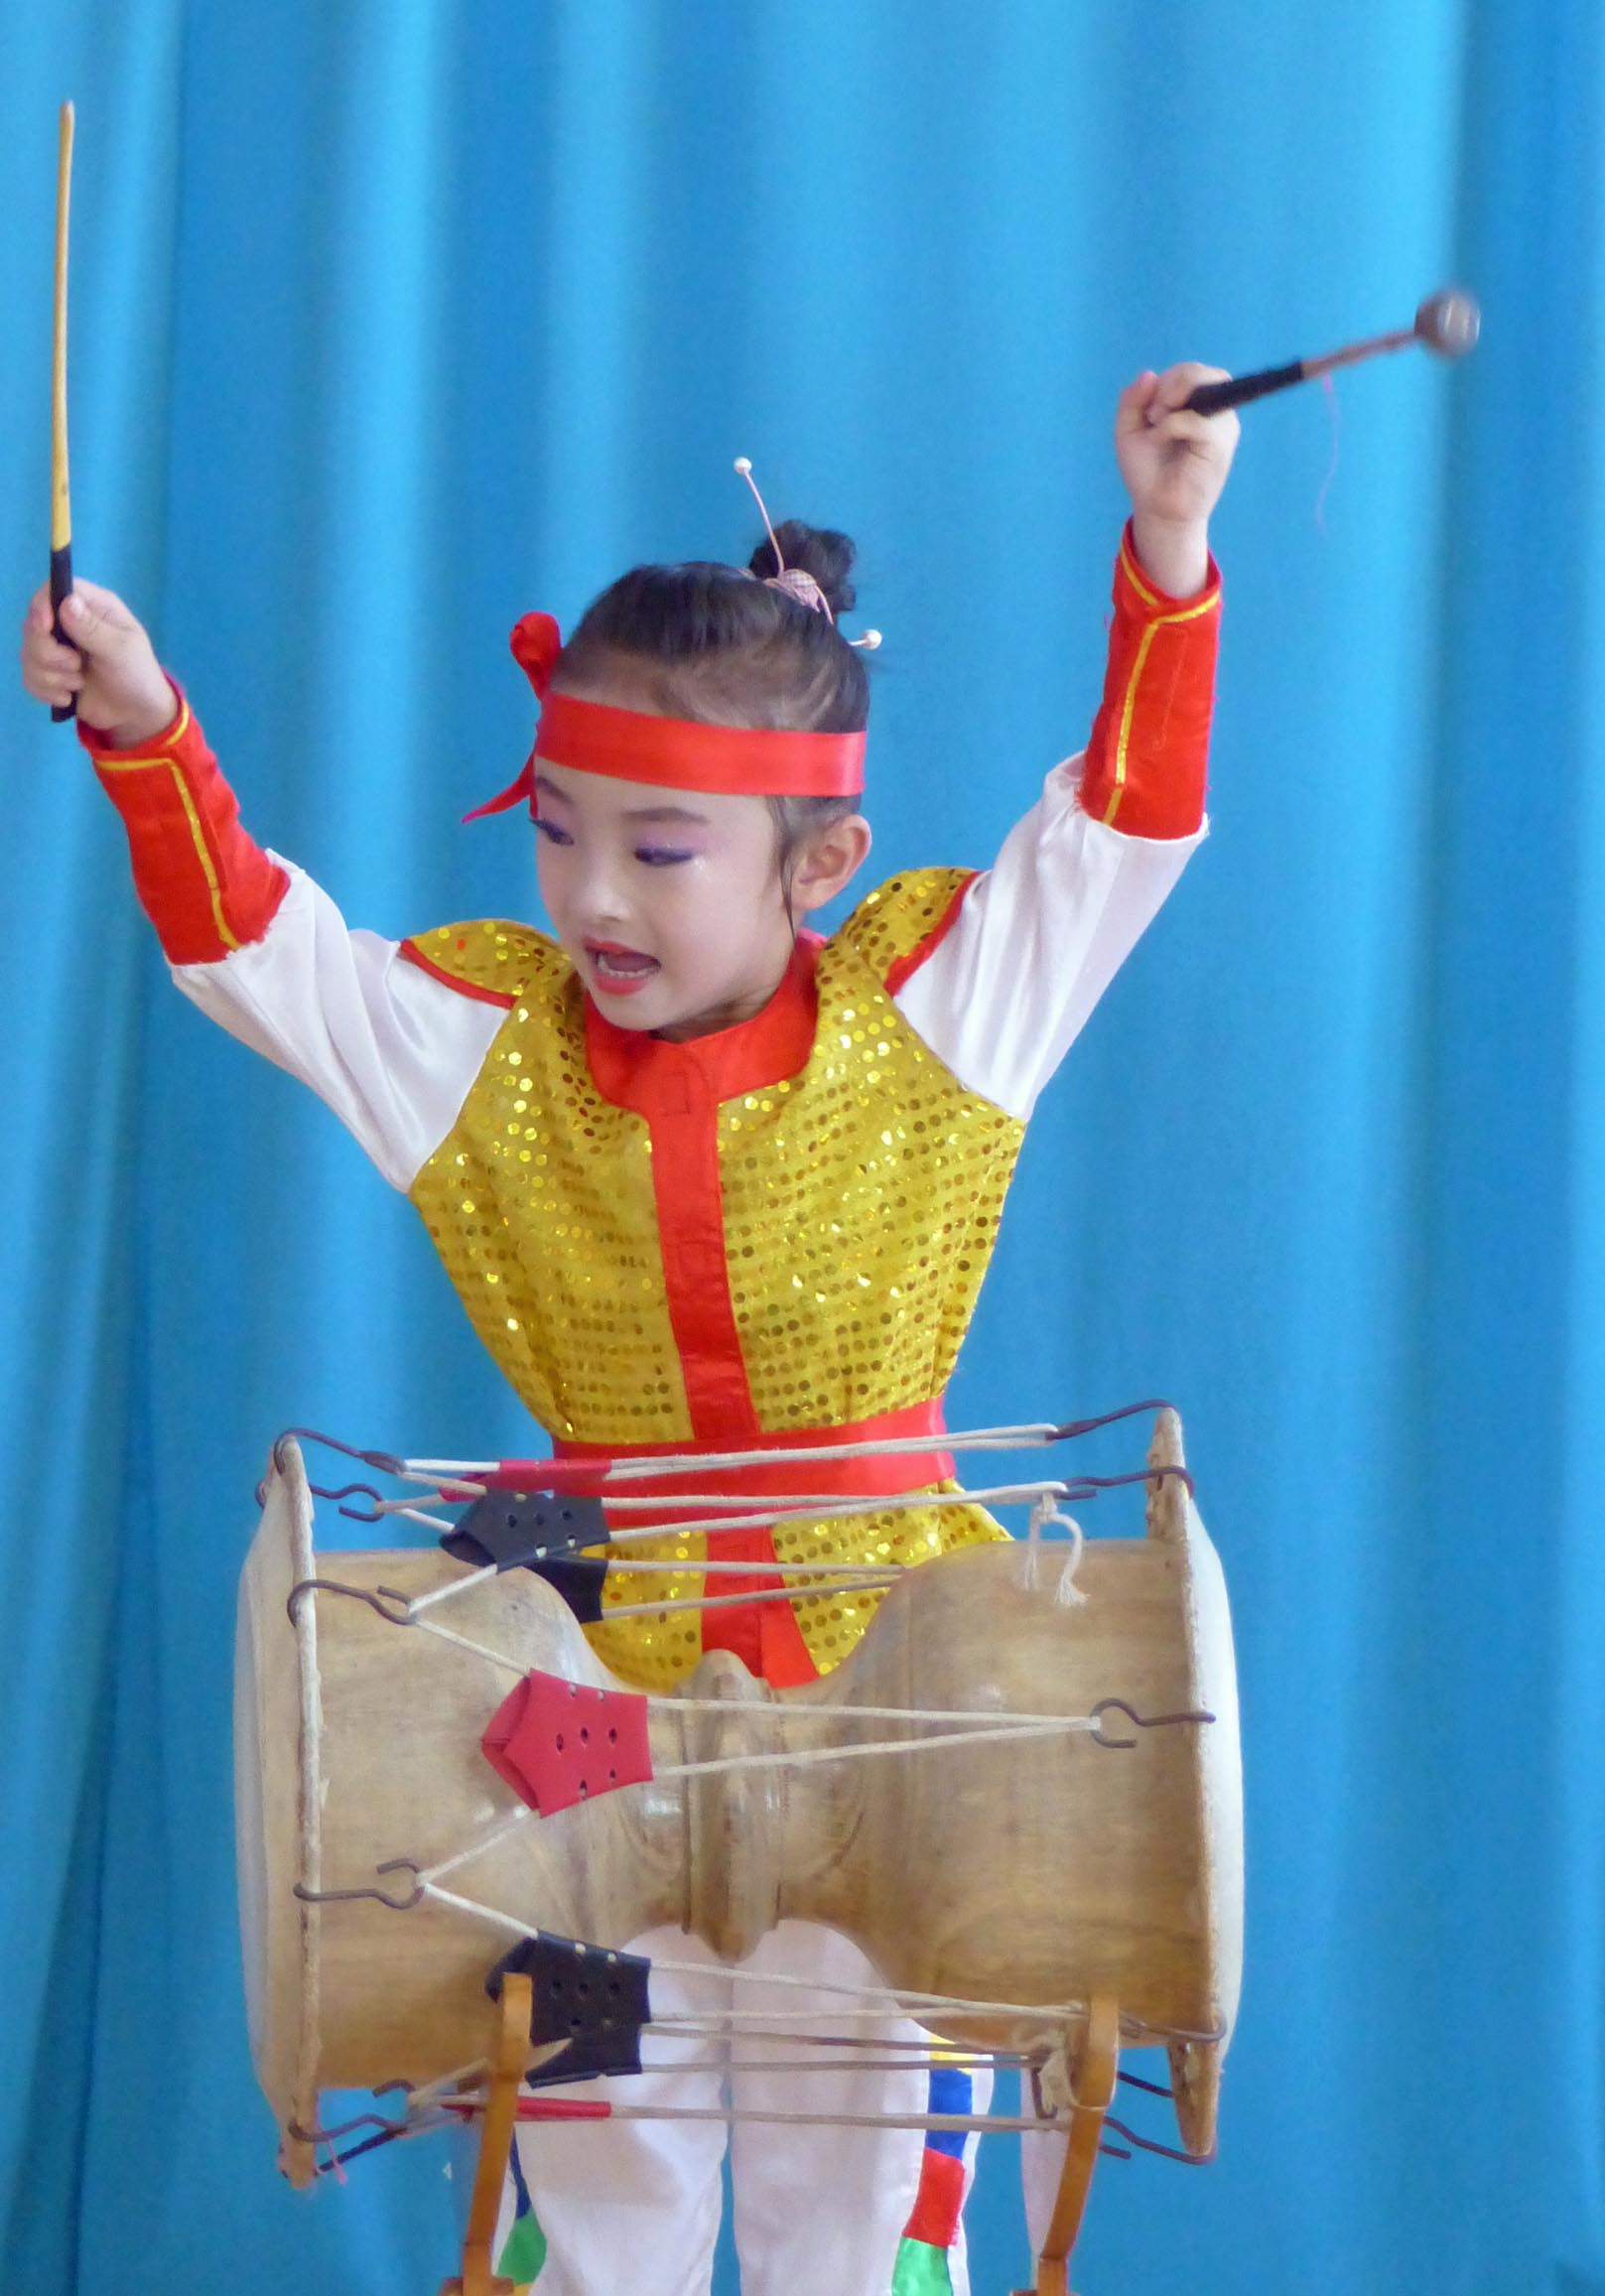 Young girl drumming